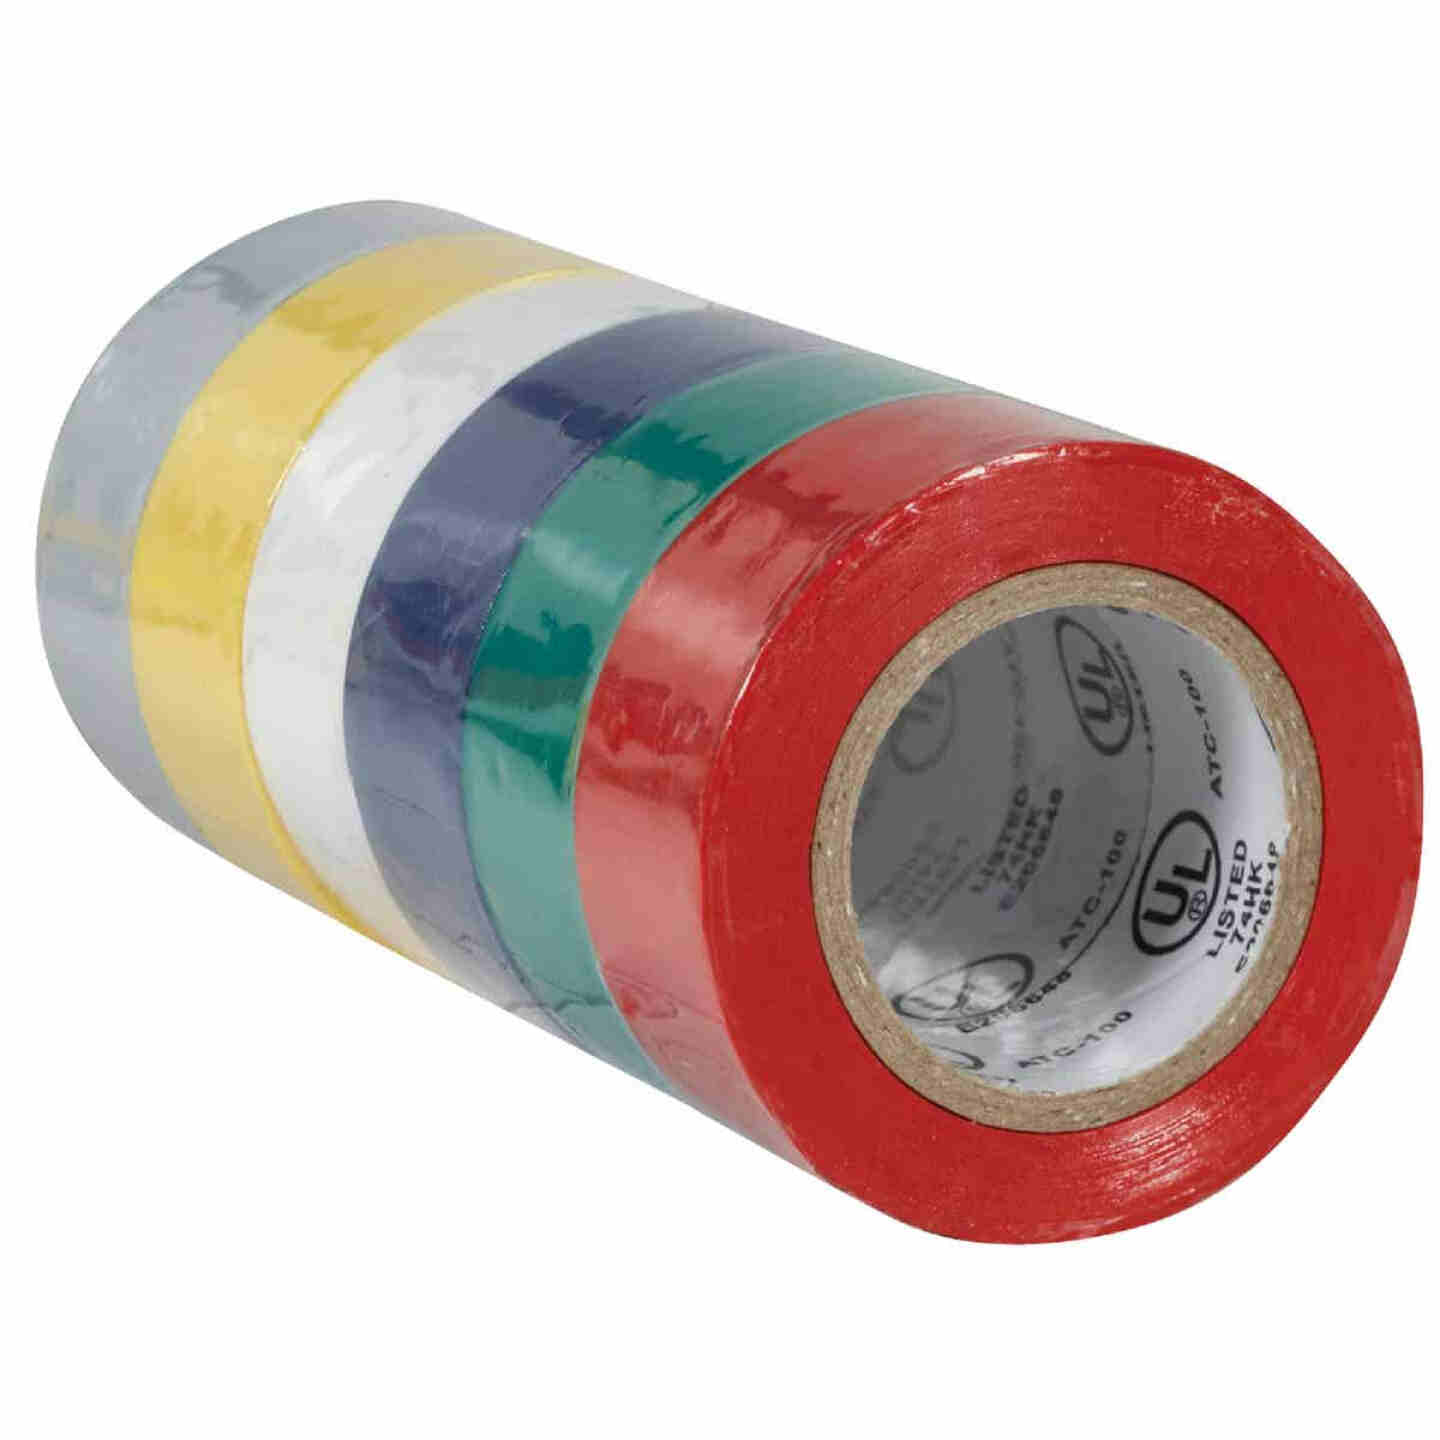 Do it General Purpose 3/4 In. x 20 Ft. Assorted Color Electrical Tape, (6-Pack) Image 3